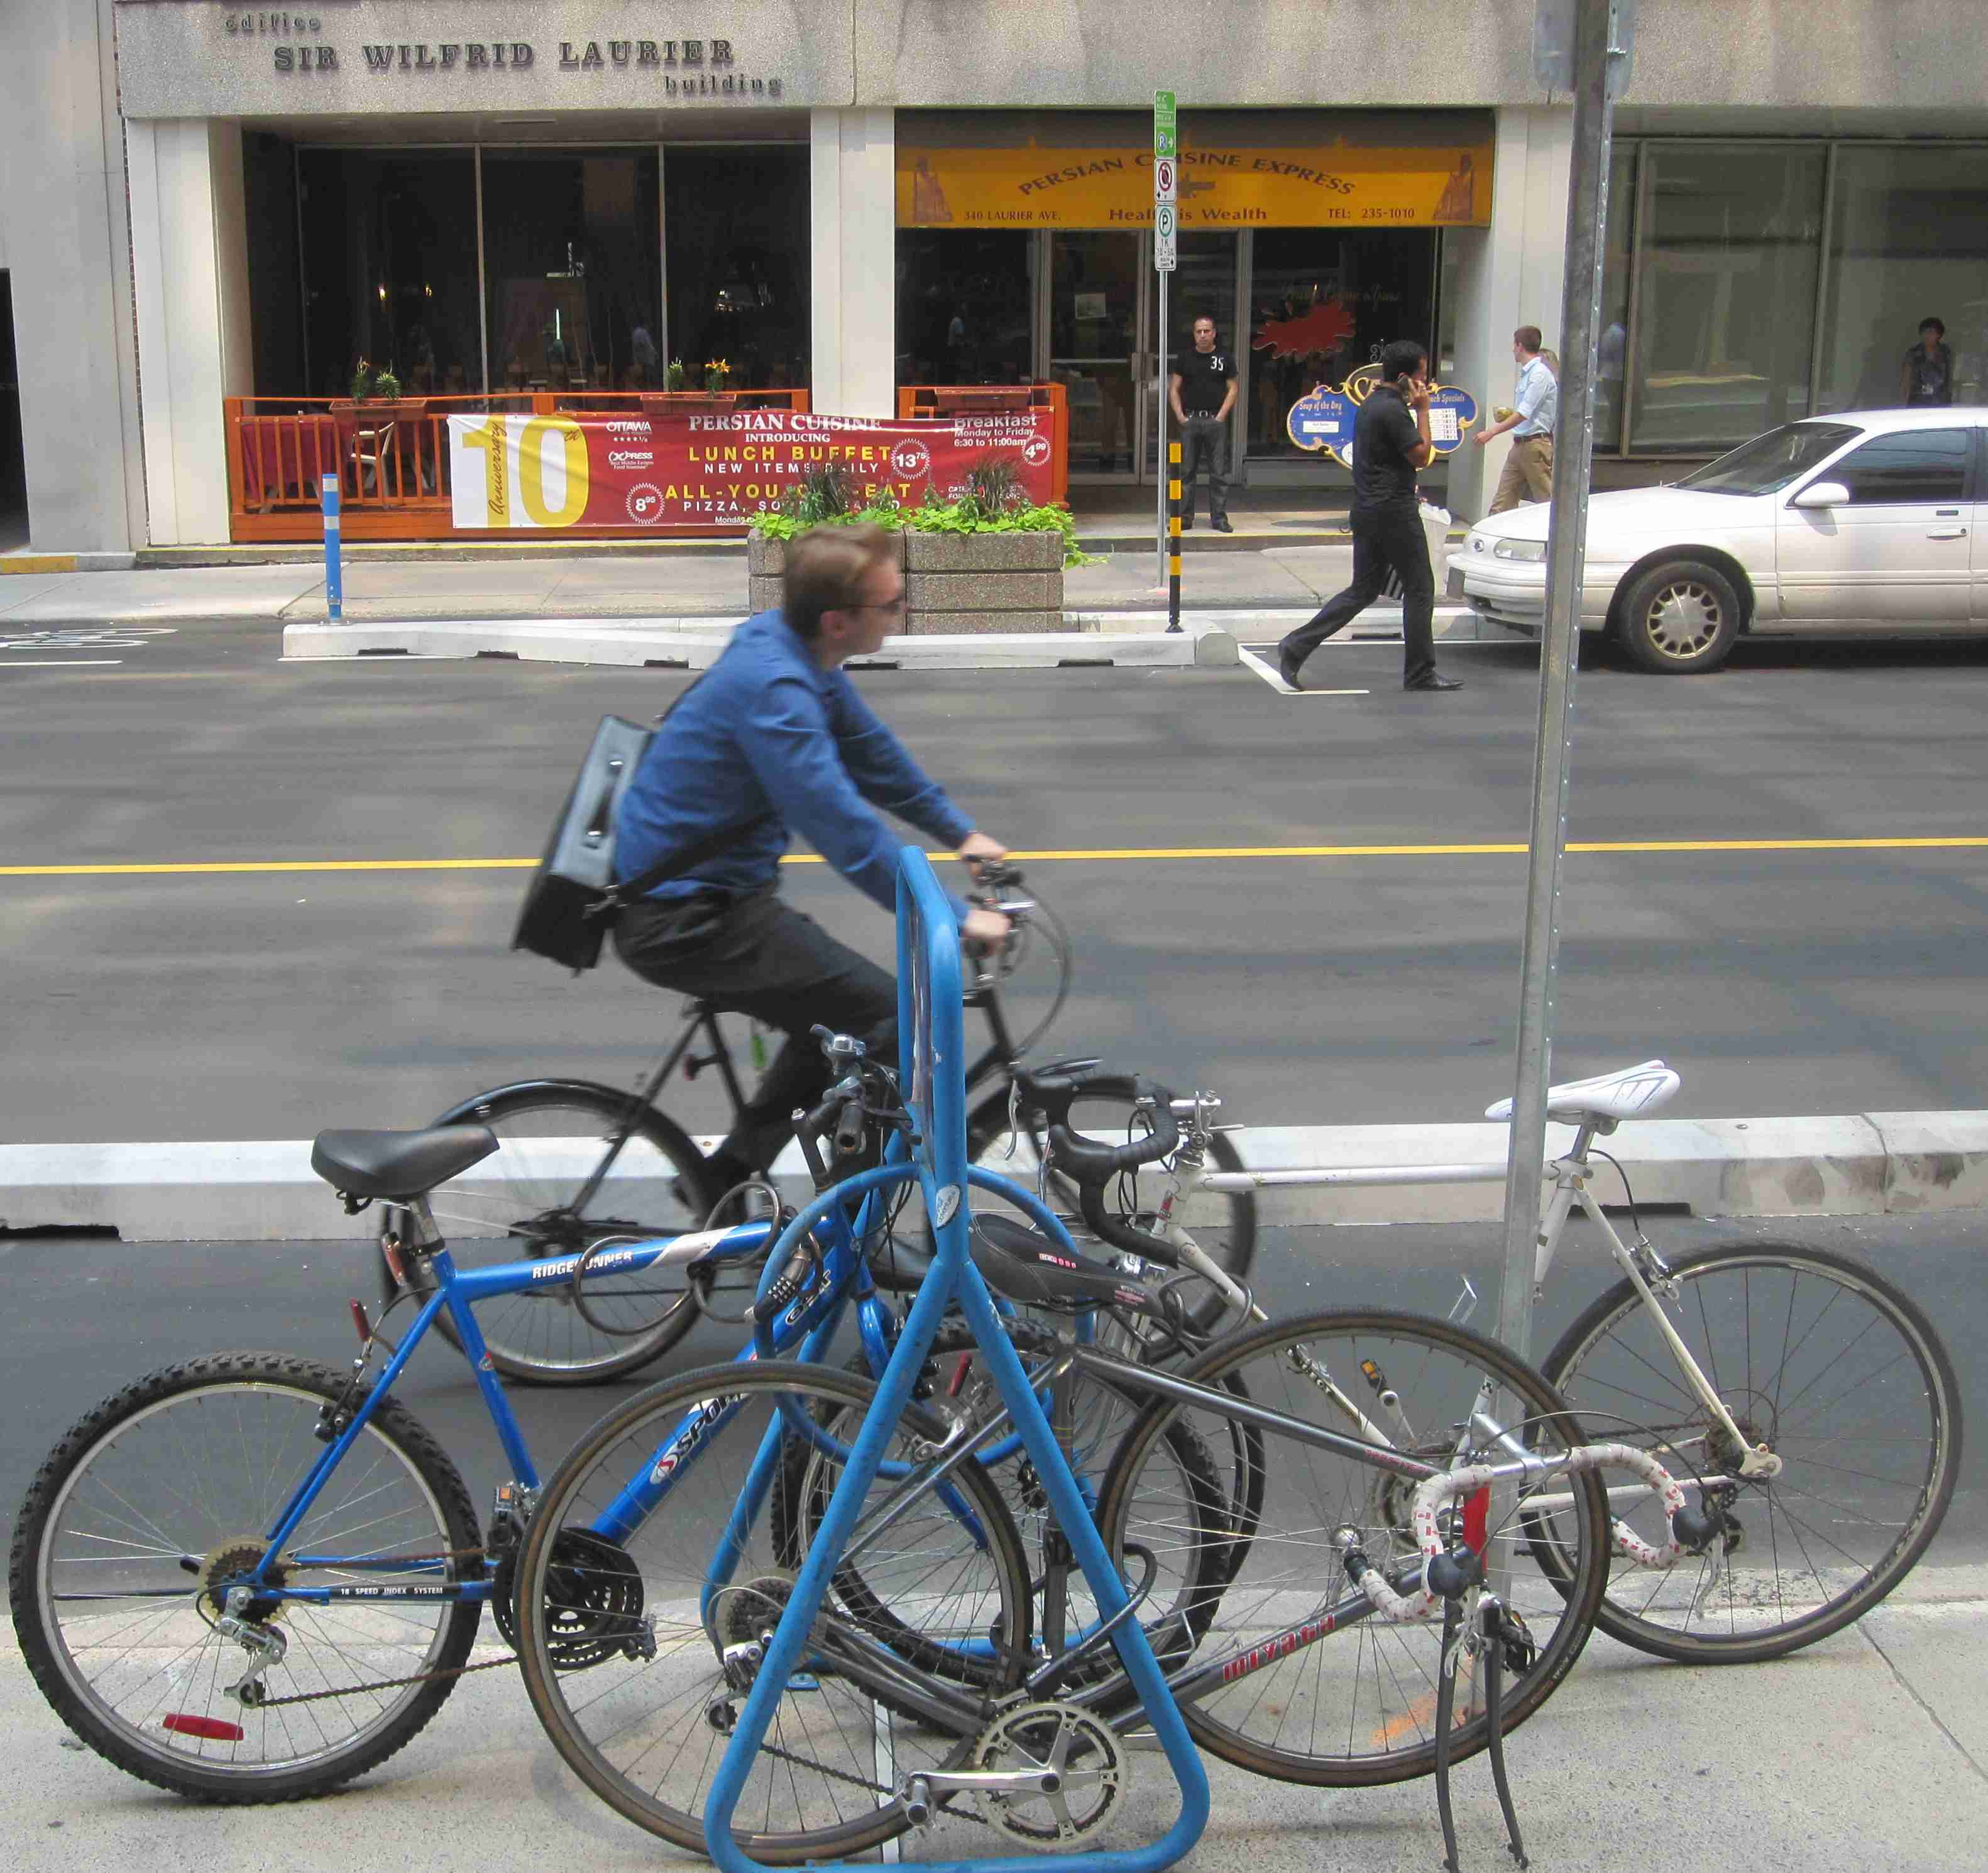 Ottawa Bicycle Culture – Persian Cuisine Express